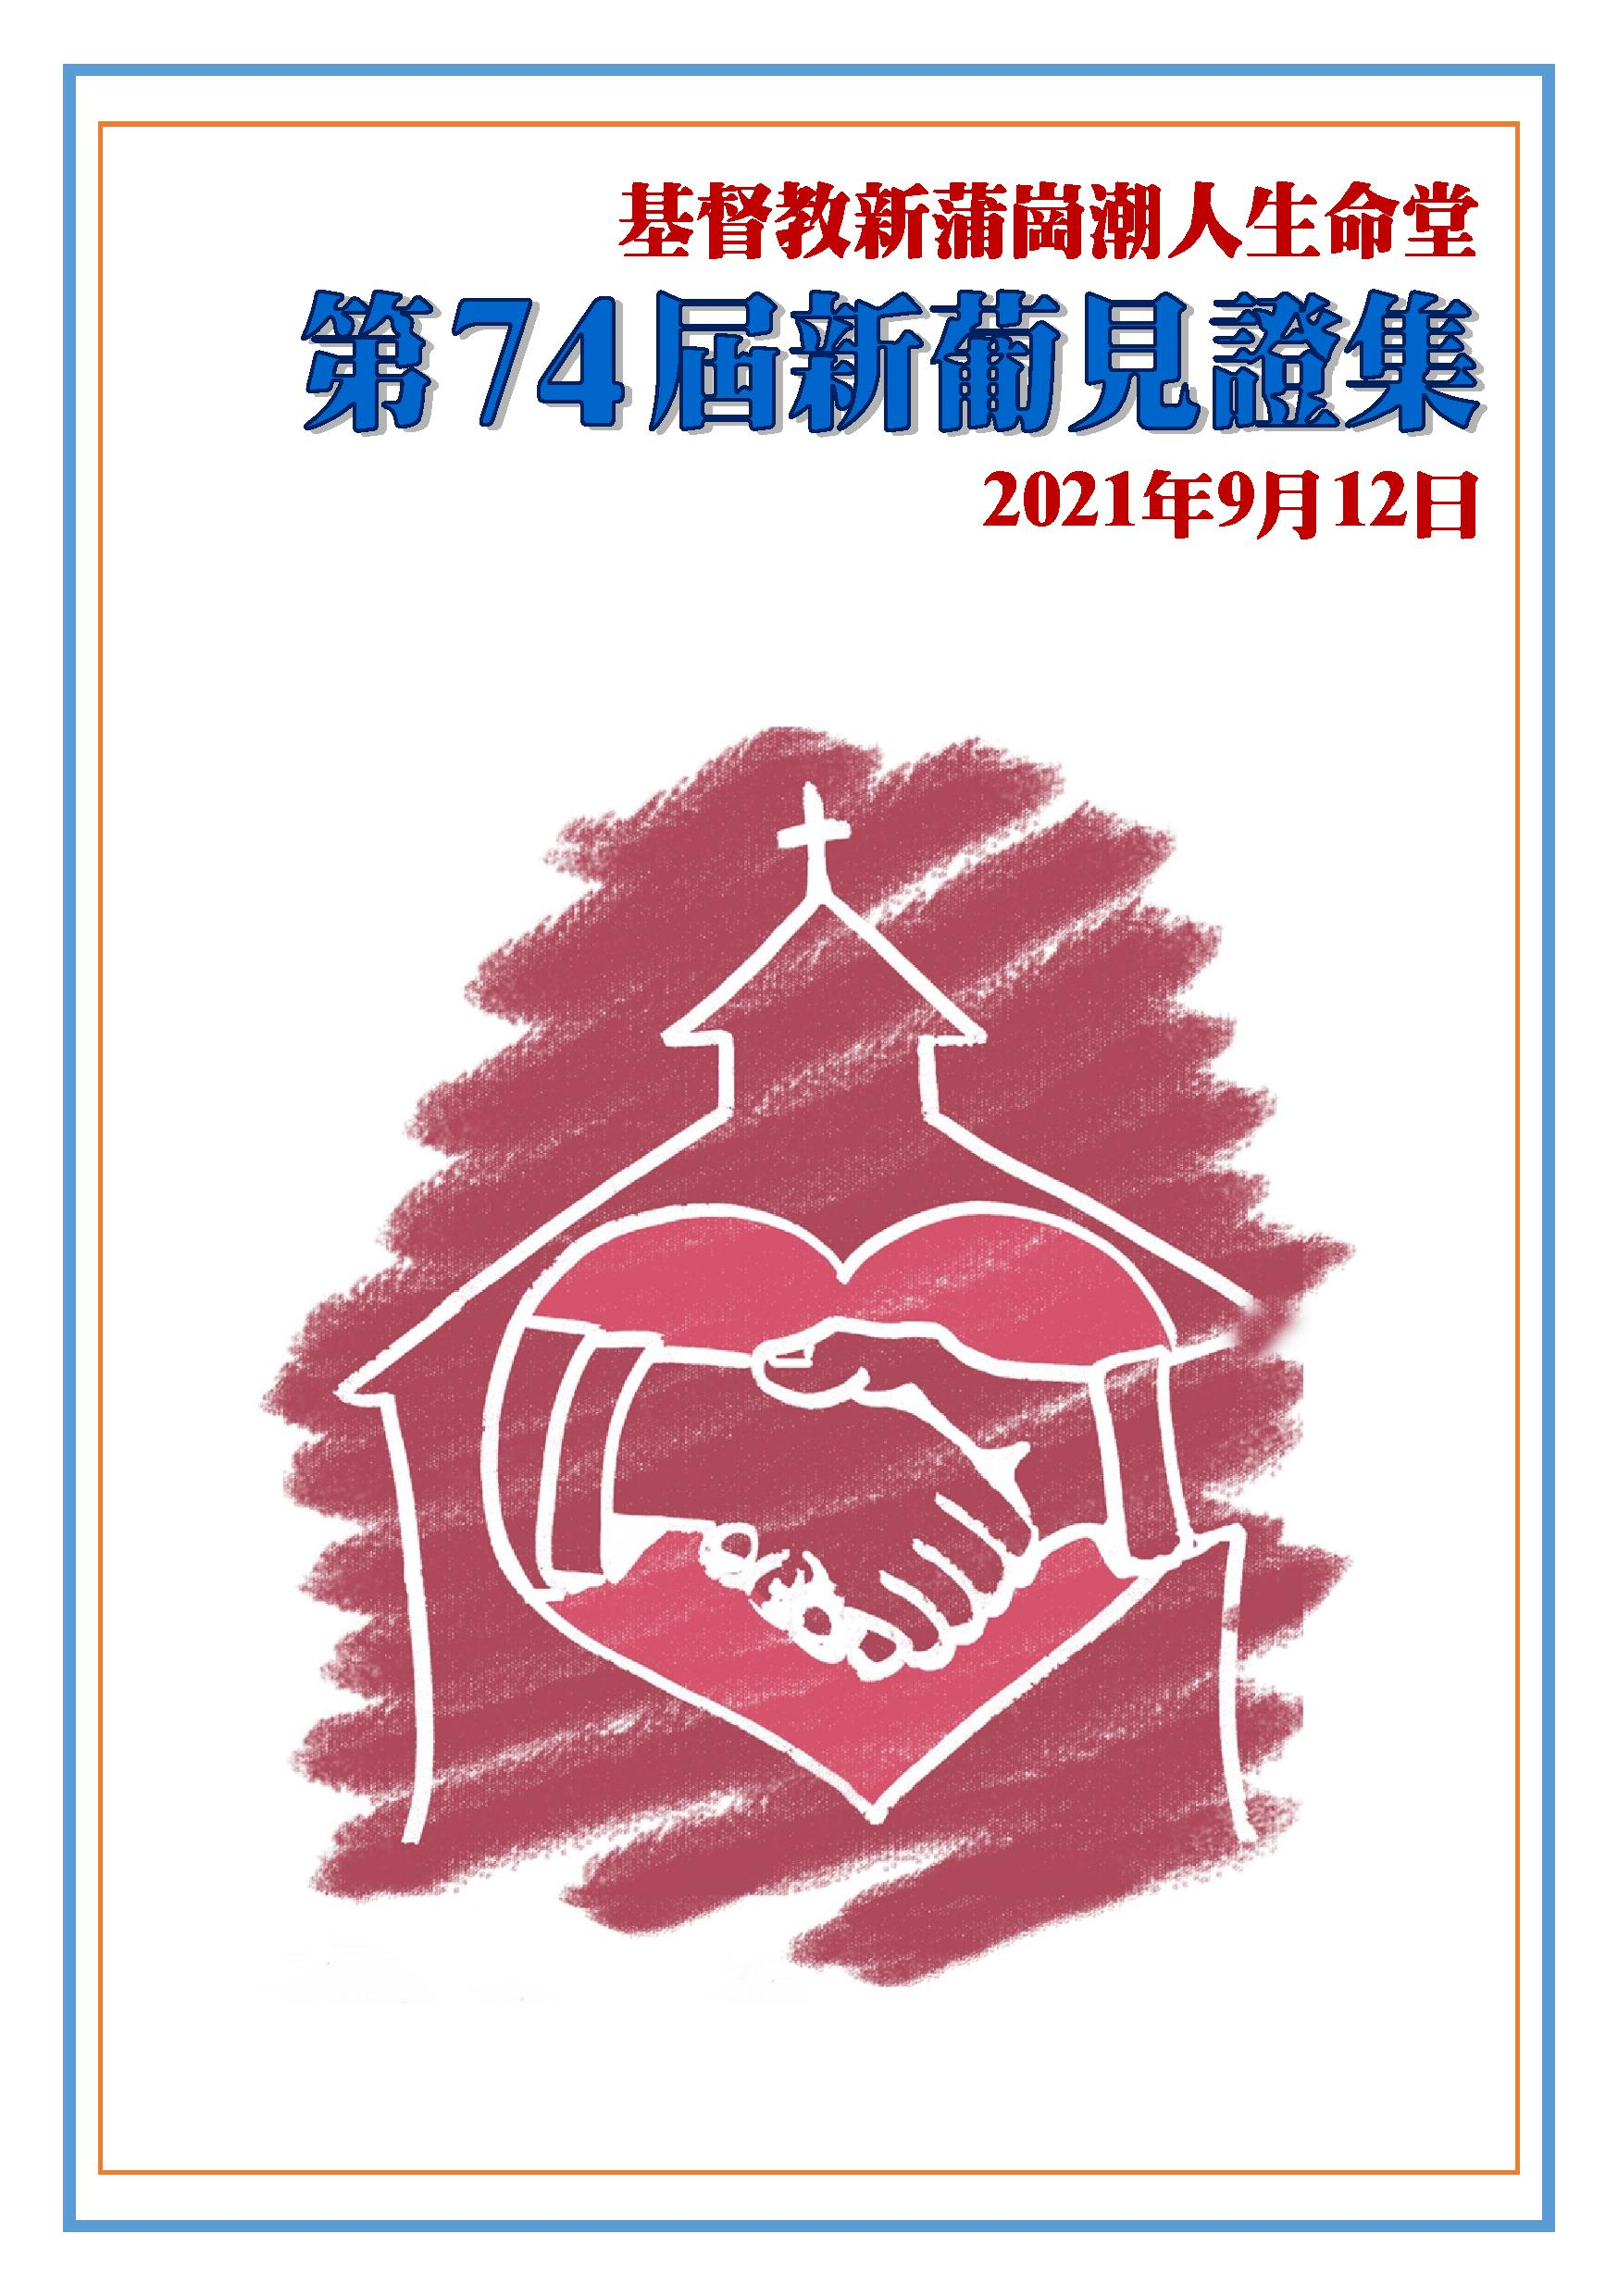 Read more about the article 第74屆新葡見證集